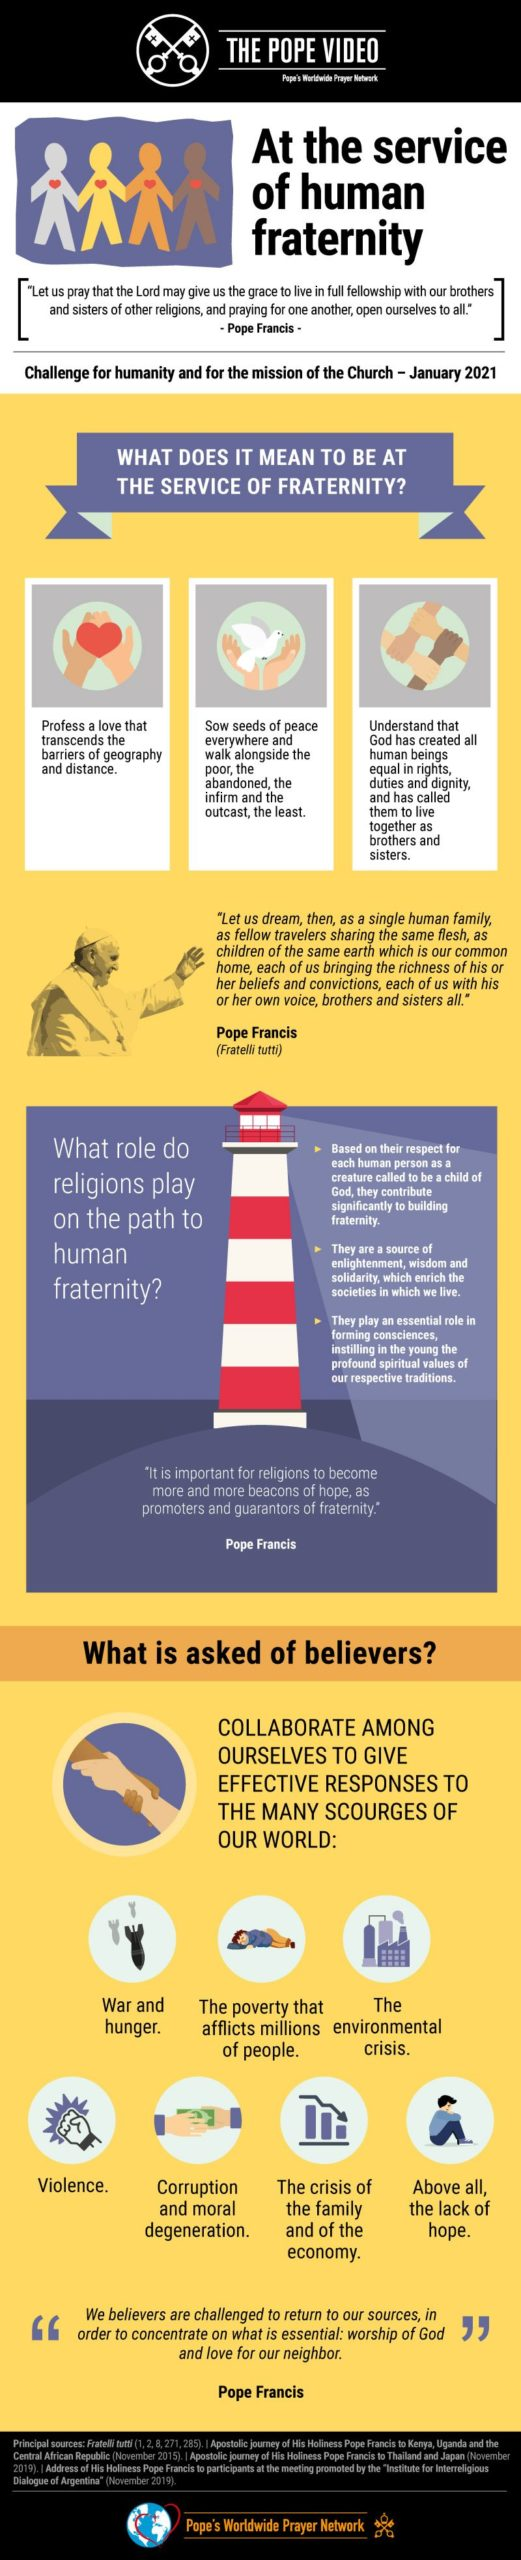 Infographic - TPV 1 2021 EN - The Pope Video - At the service of human fraternity